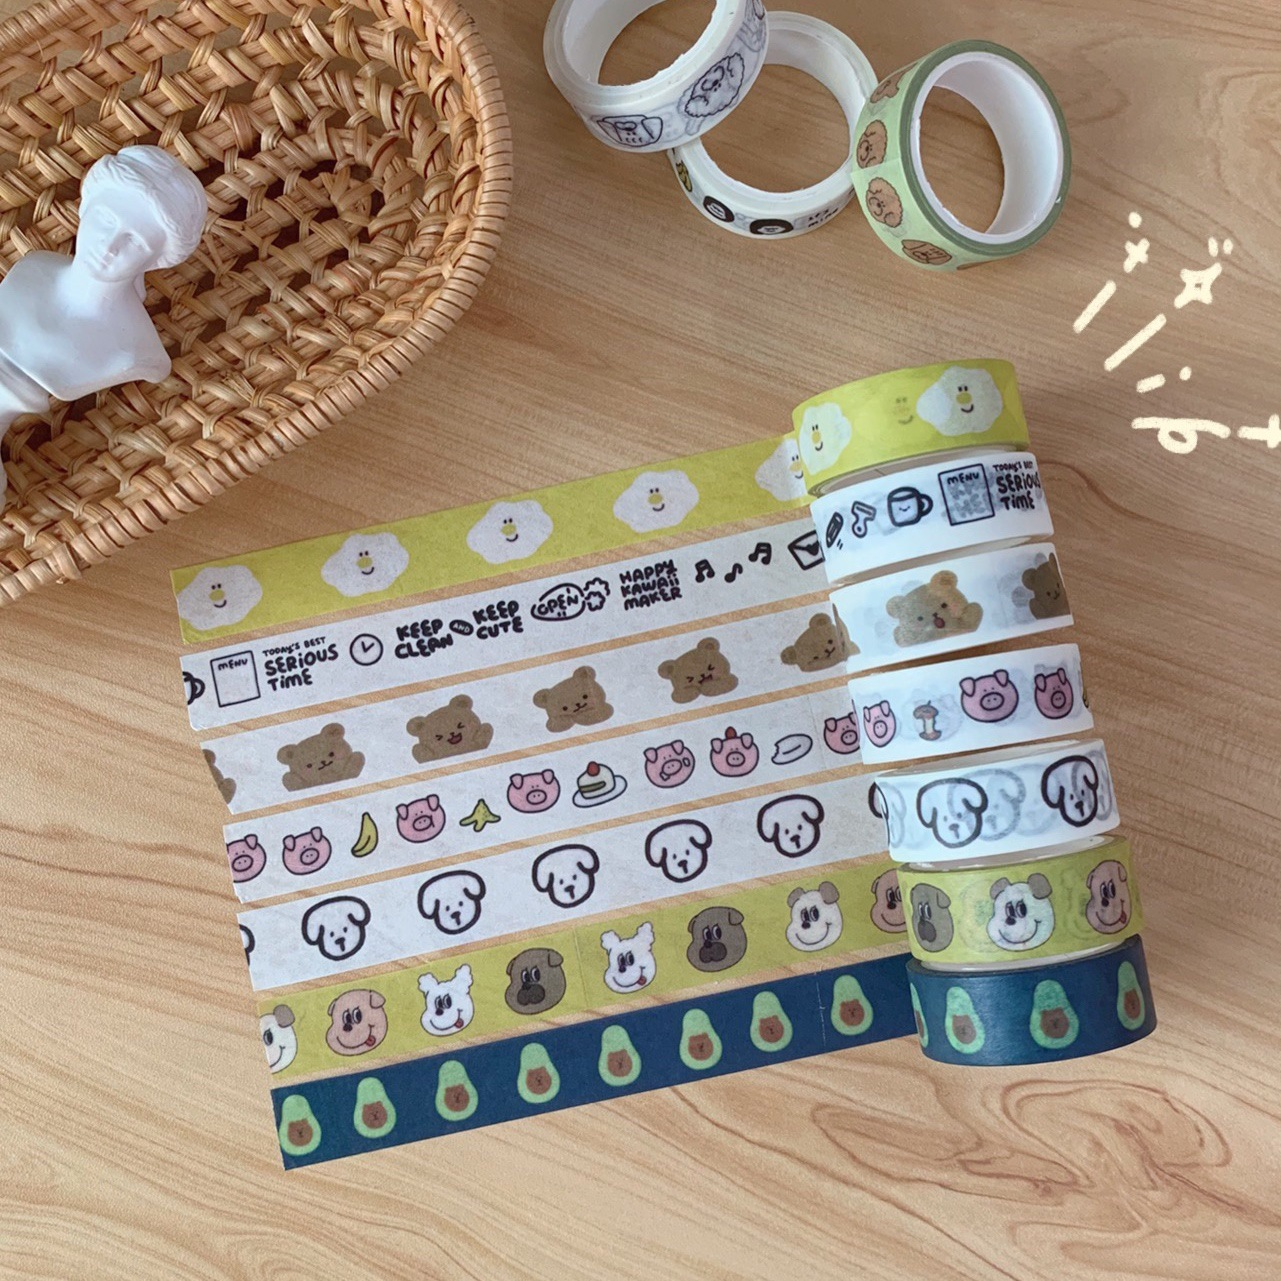 1 Roll Kawaii Washi Tape Cute Animal Alphabet Pattern Translucent Stationery Washi Tape Masking Tape Diary Journal Decoration